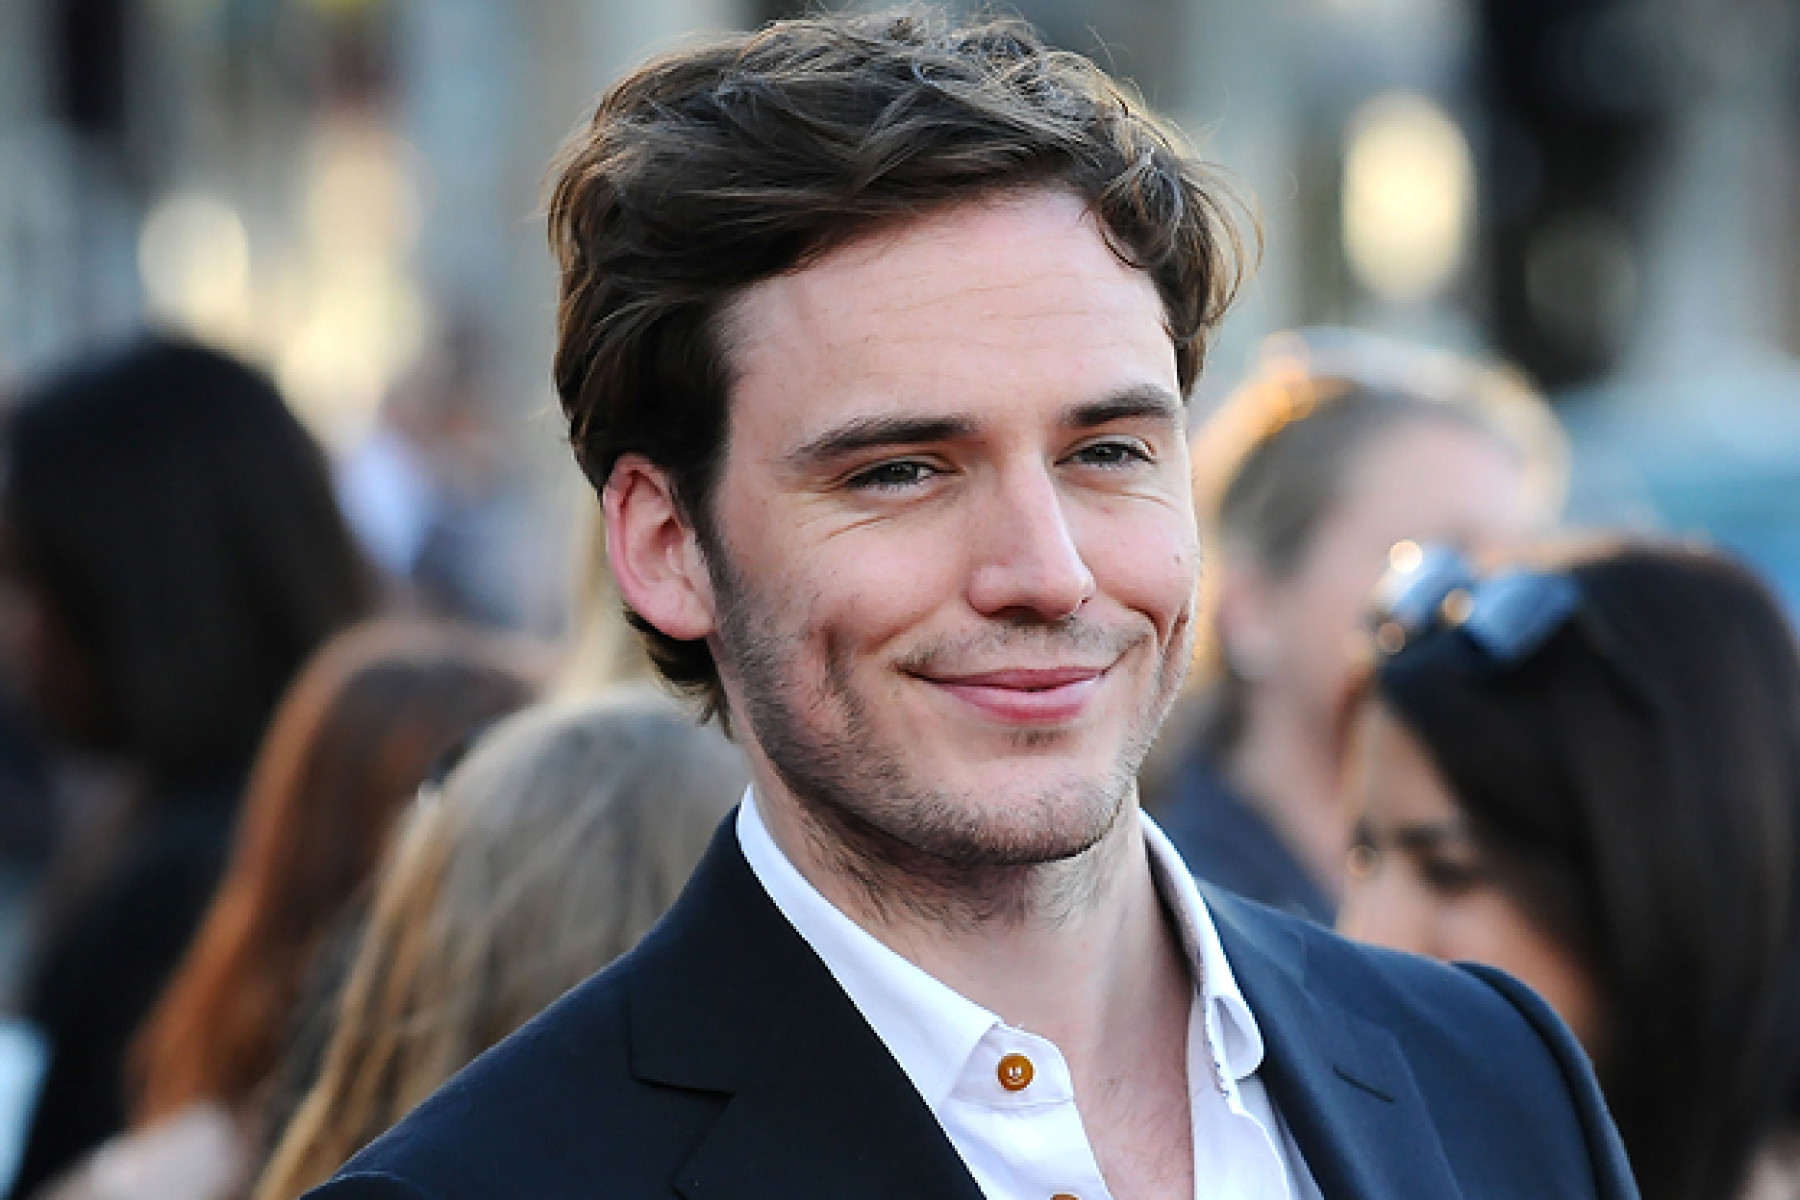 Sam Claflin, Please Send Us A Sign That You're Okay | FIB